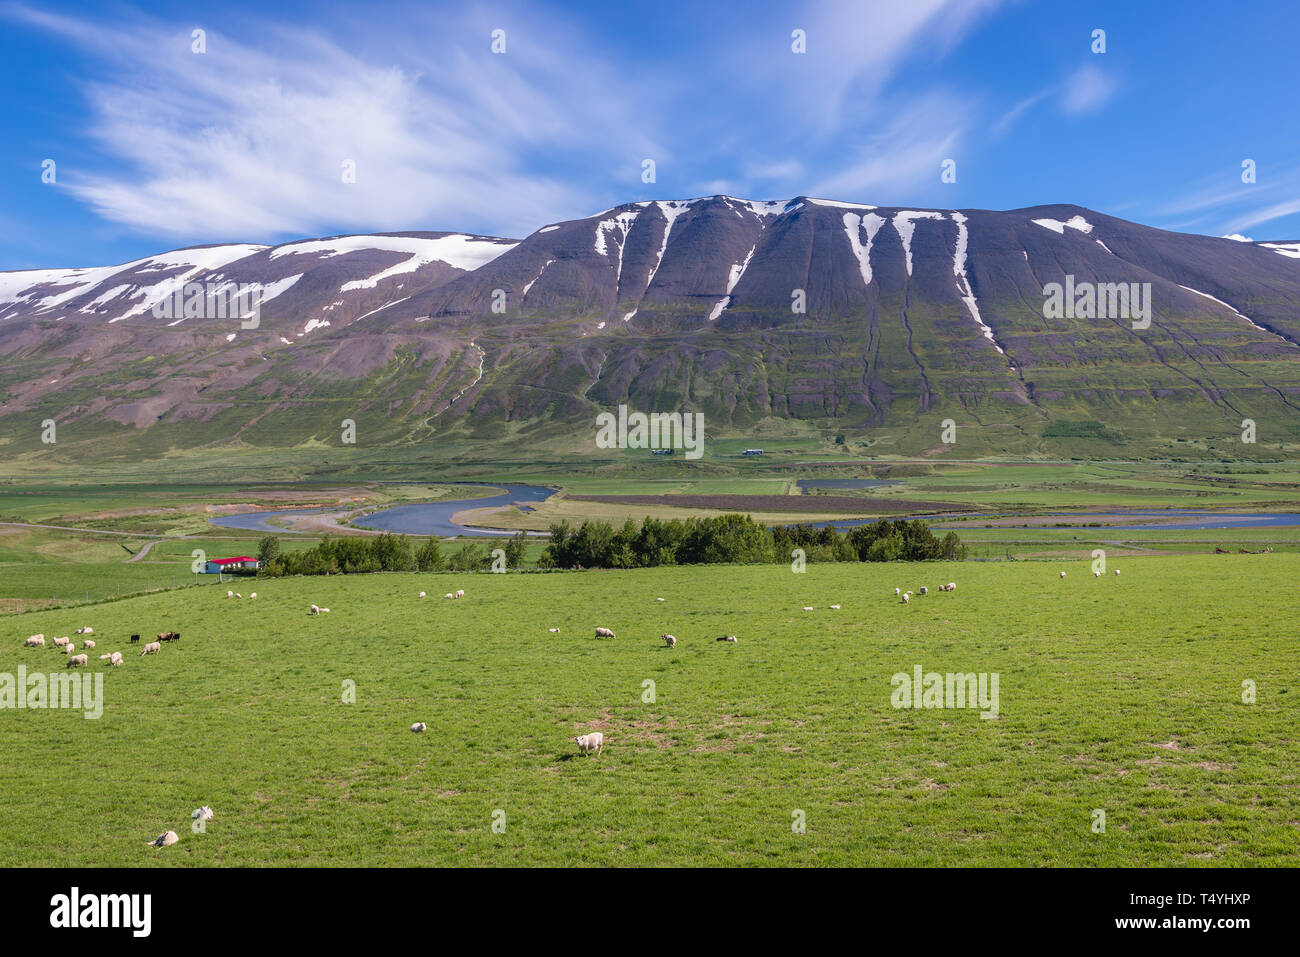 Sheeps on a large graazing land near Vikurskard mountain pass in norther Iceland - Stock Image